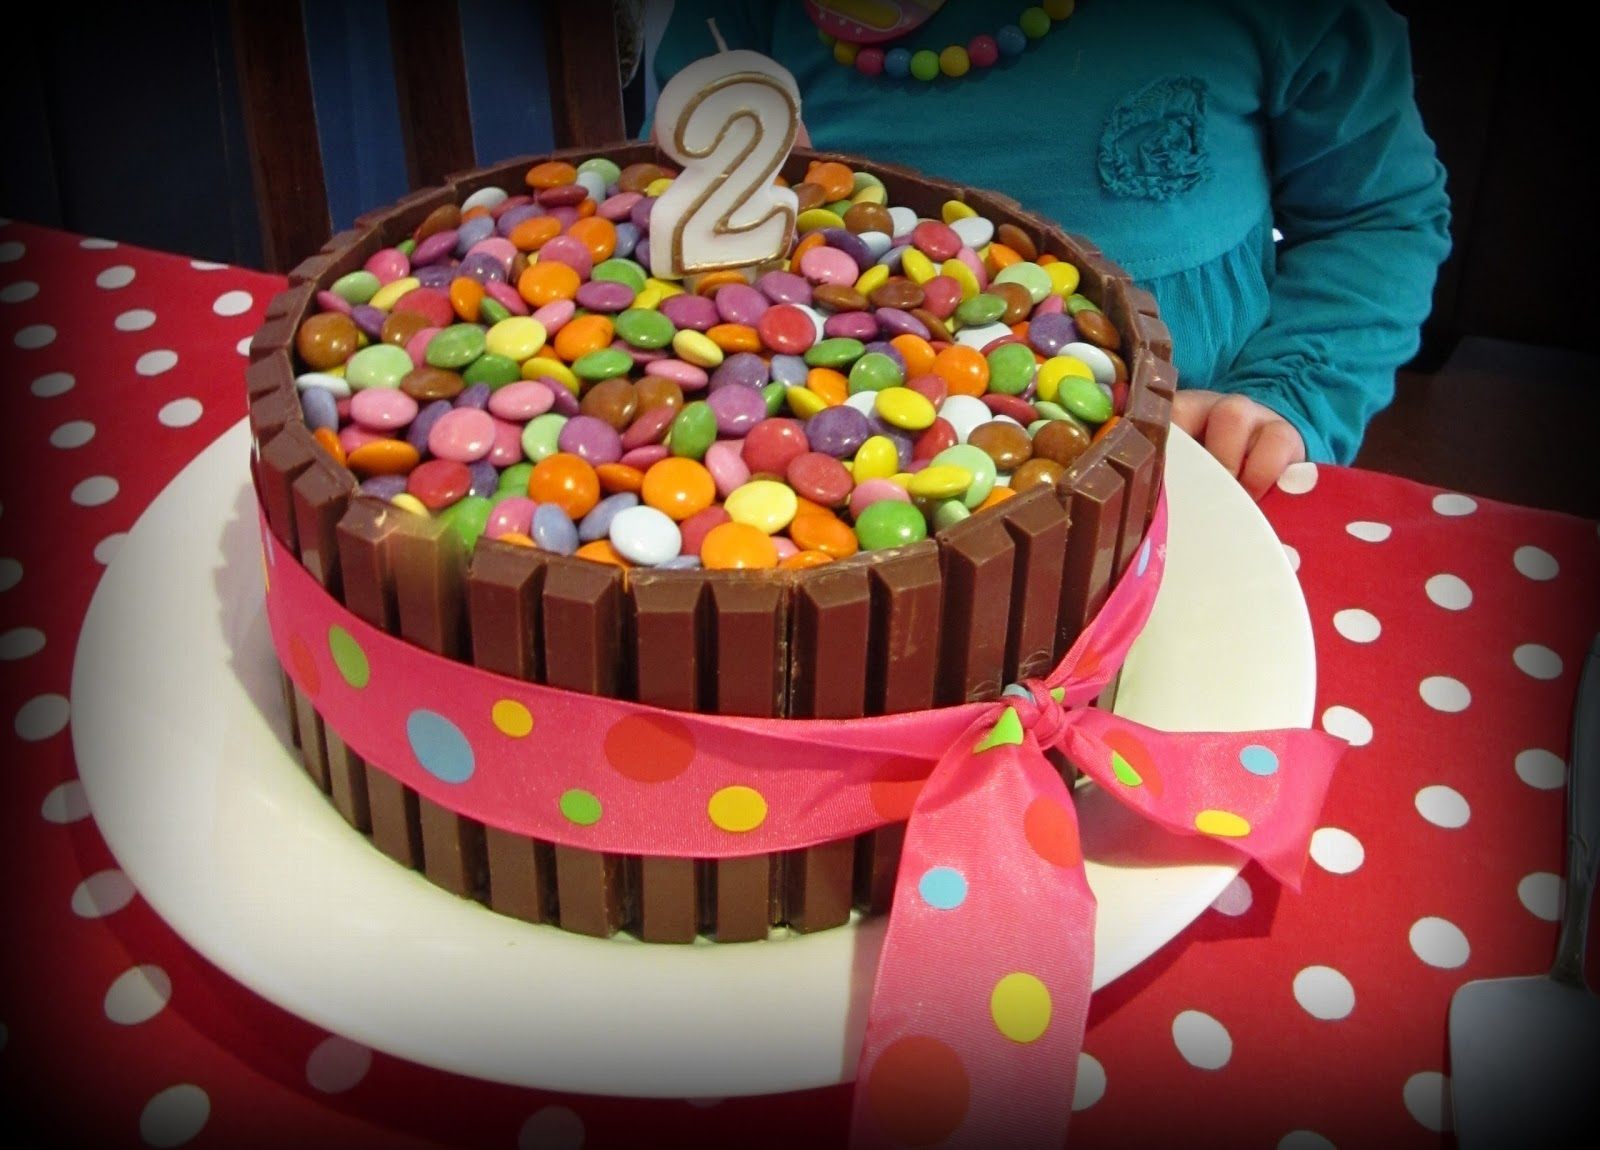 Cake Ideas For 2nd Birthday Girl : arthurandsage: cute sister s 2nd Birthday Cake...